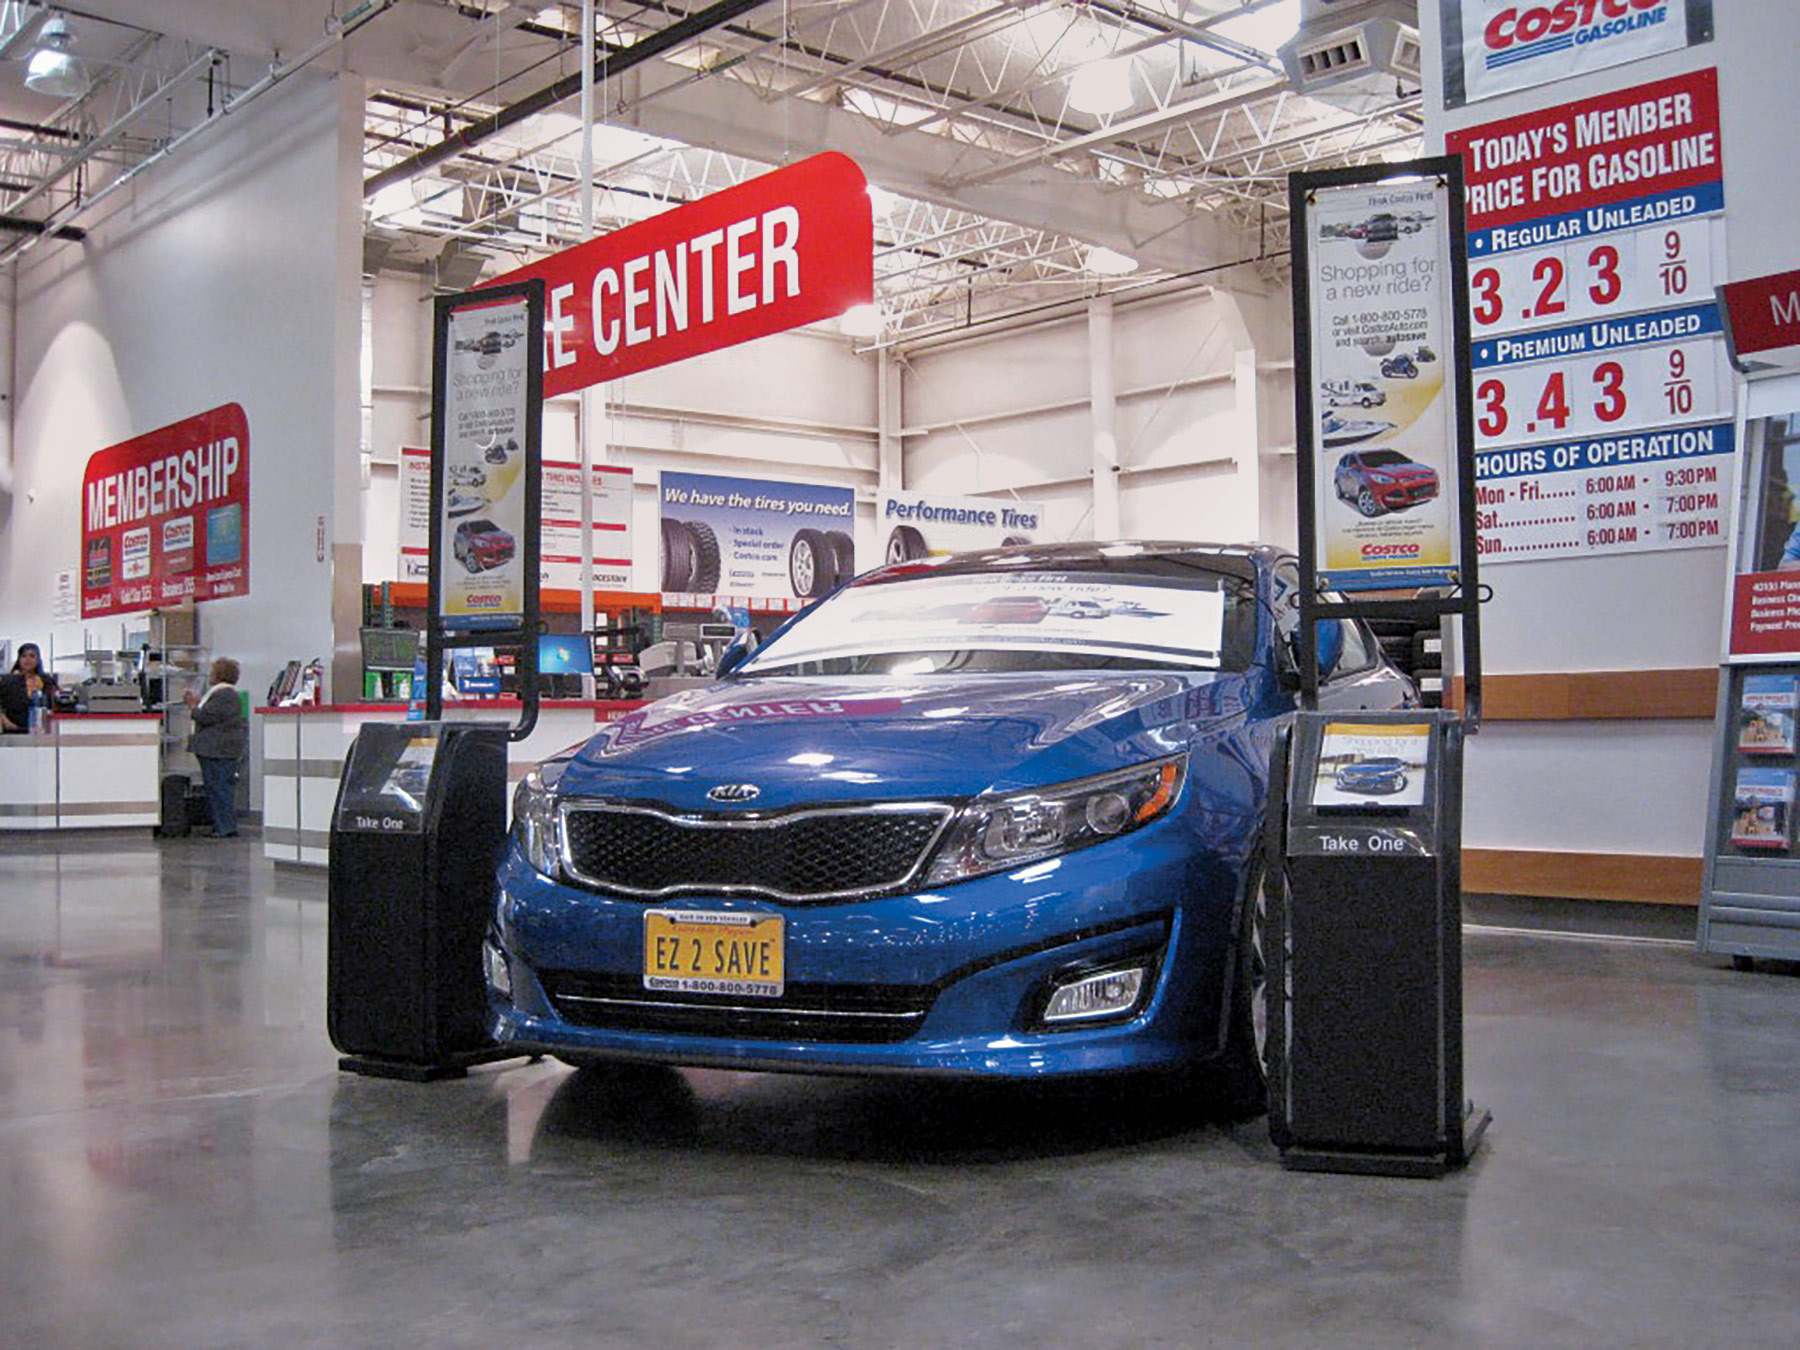 Cars for Sale by Costco Luxury Costco S Car Sales Near Autonation S as Ers Seek No Haggle Deals